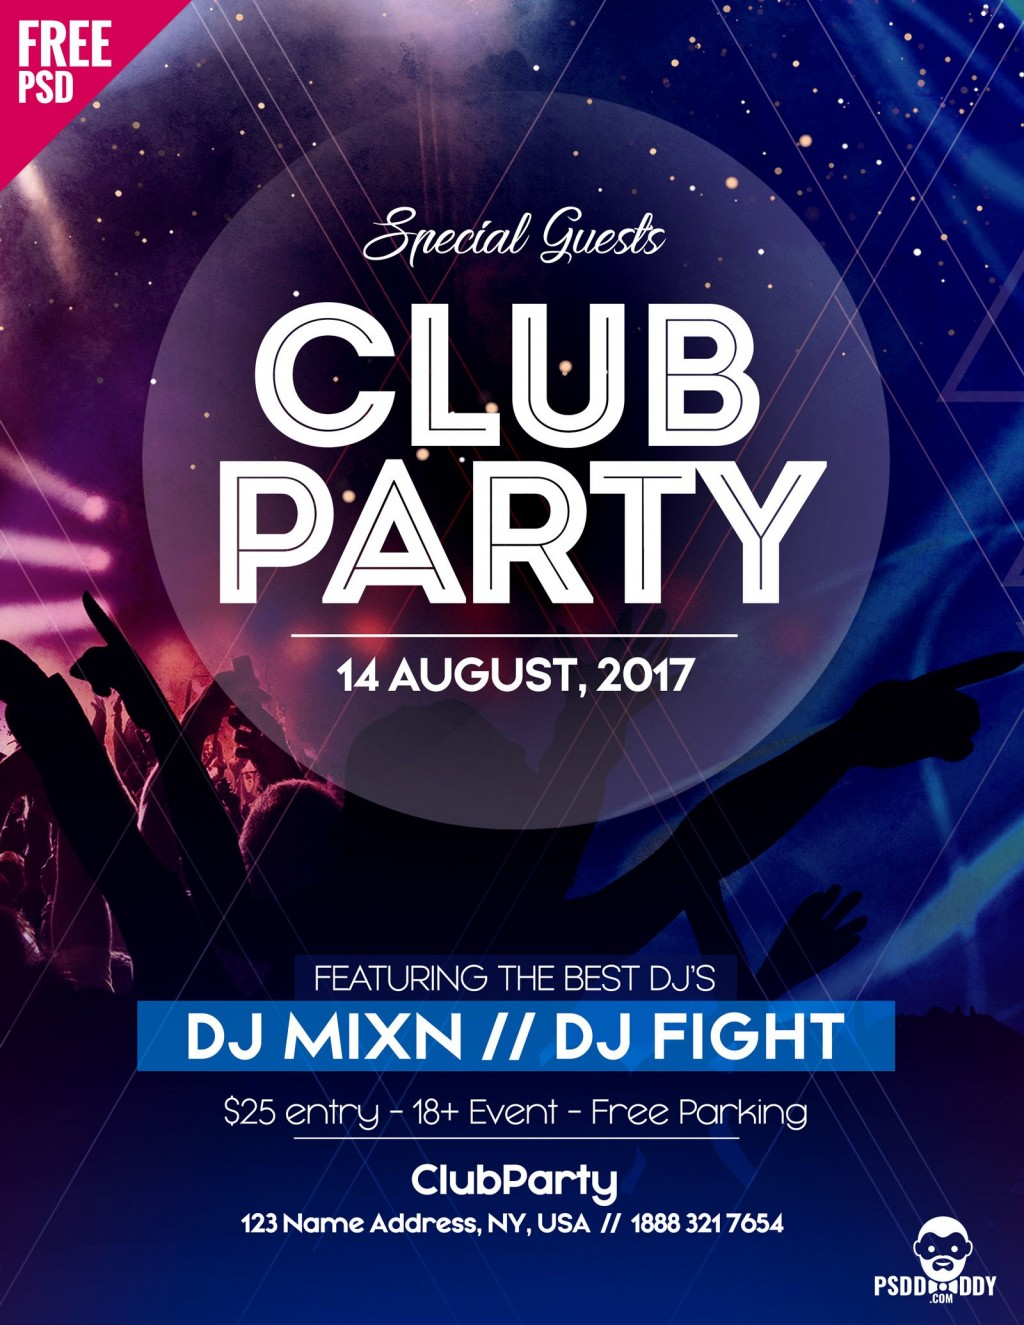 004 Rare Party Event Flyer Template Free Download Picture Large